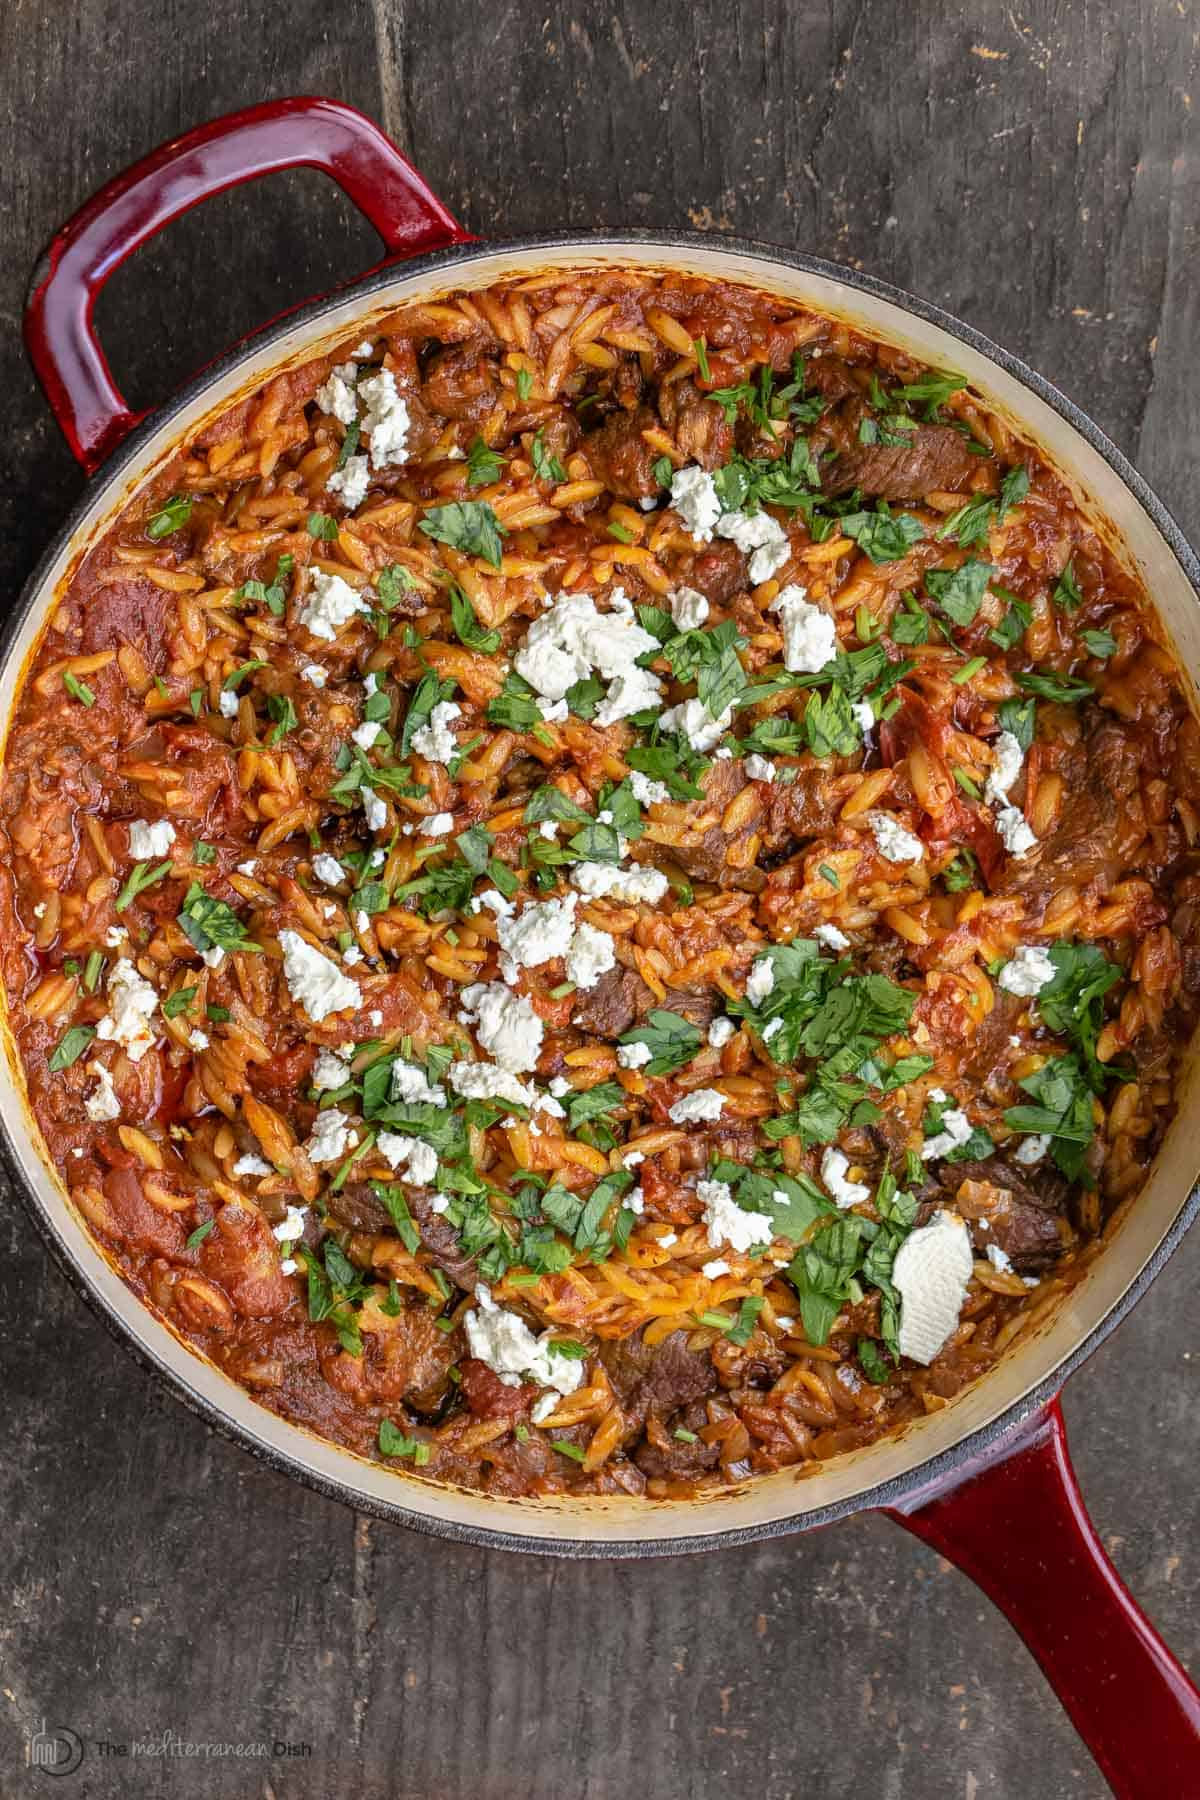 Youvetsi greek lamb stew topped with feta and parsley